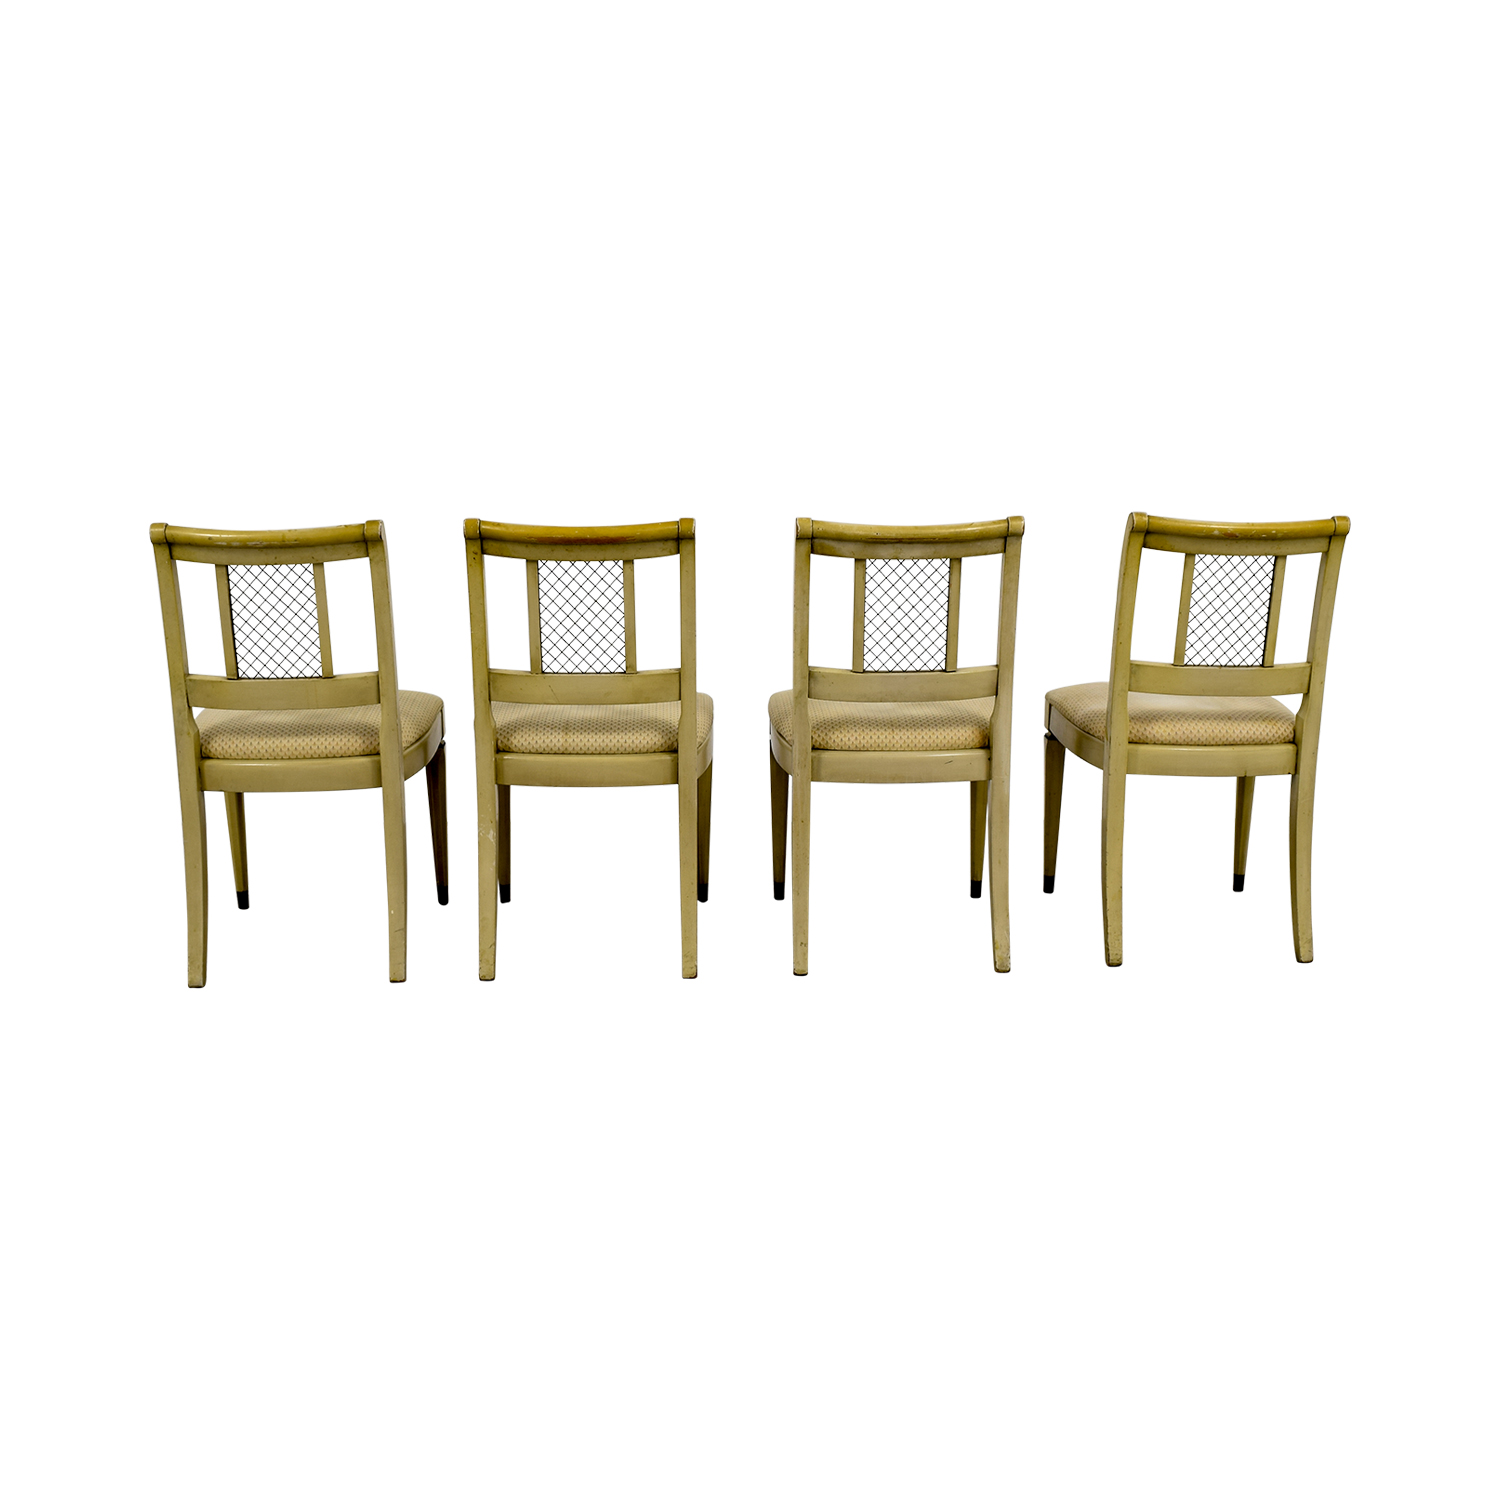 Vintage Tan Dining Chairs dimensions